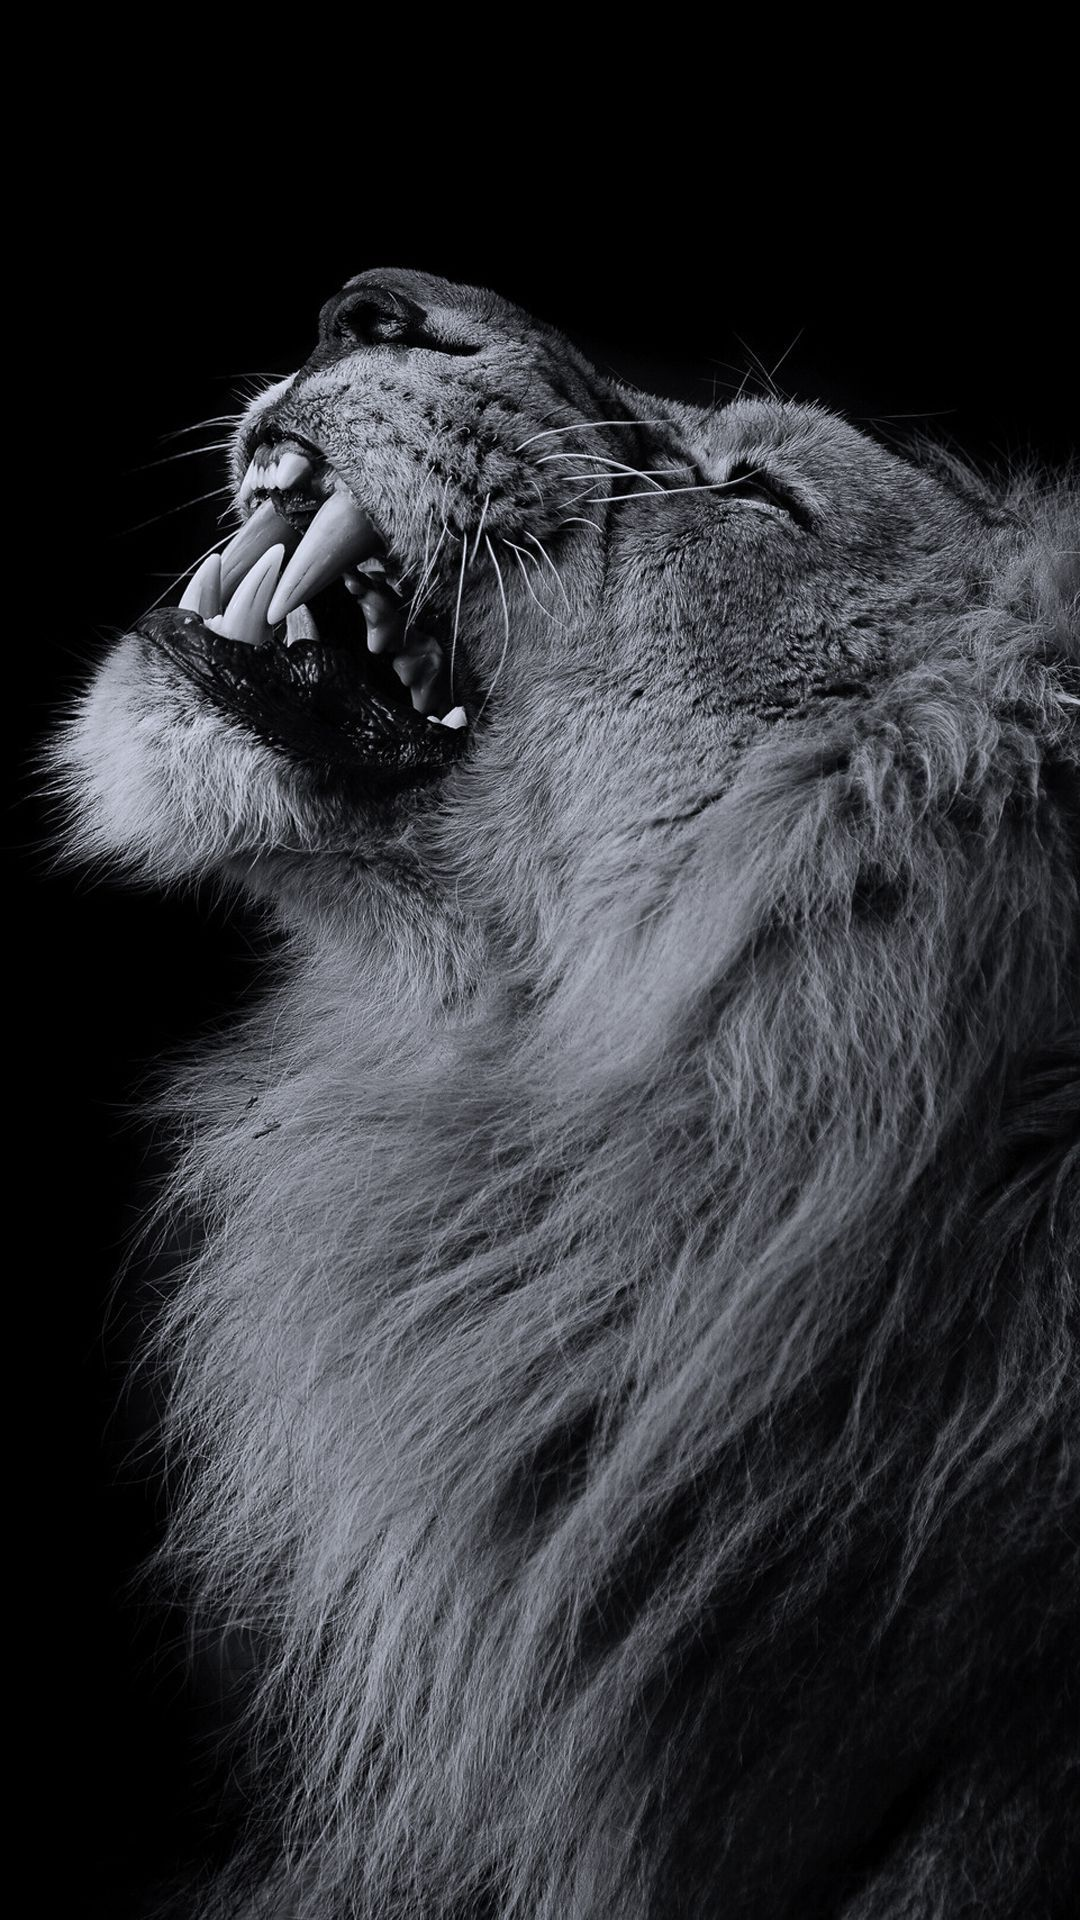 Black Lion Wallpaper 1080p For Iphone Wallpaper On Hupages Com If